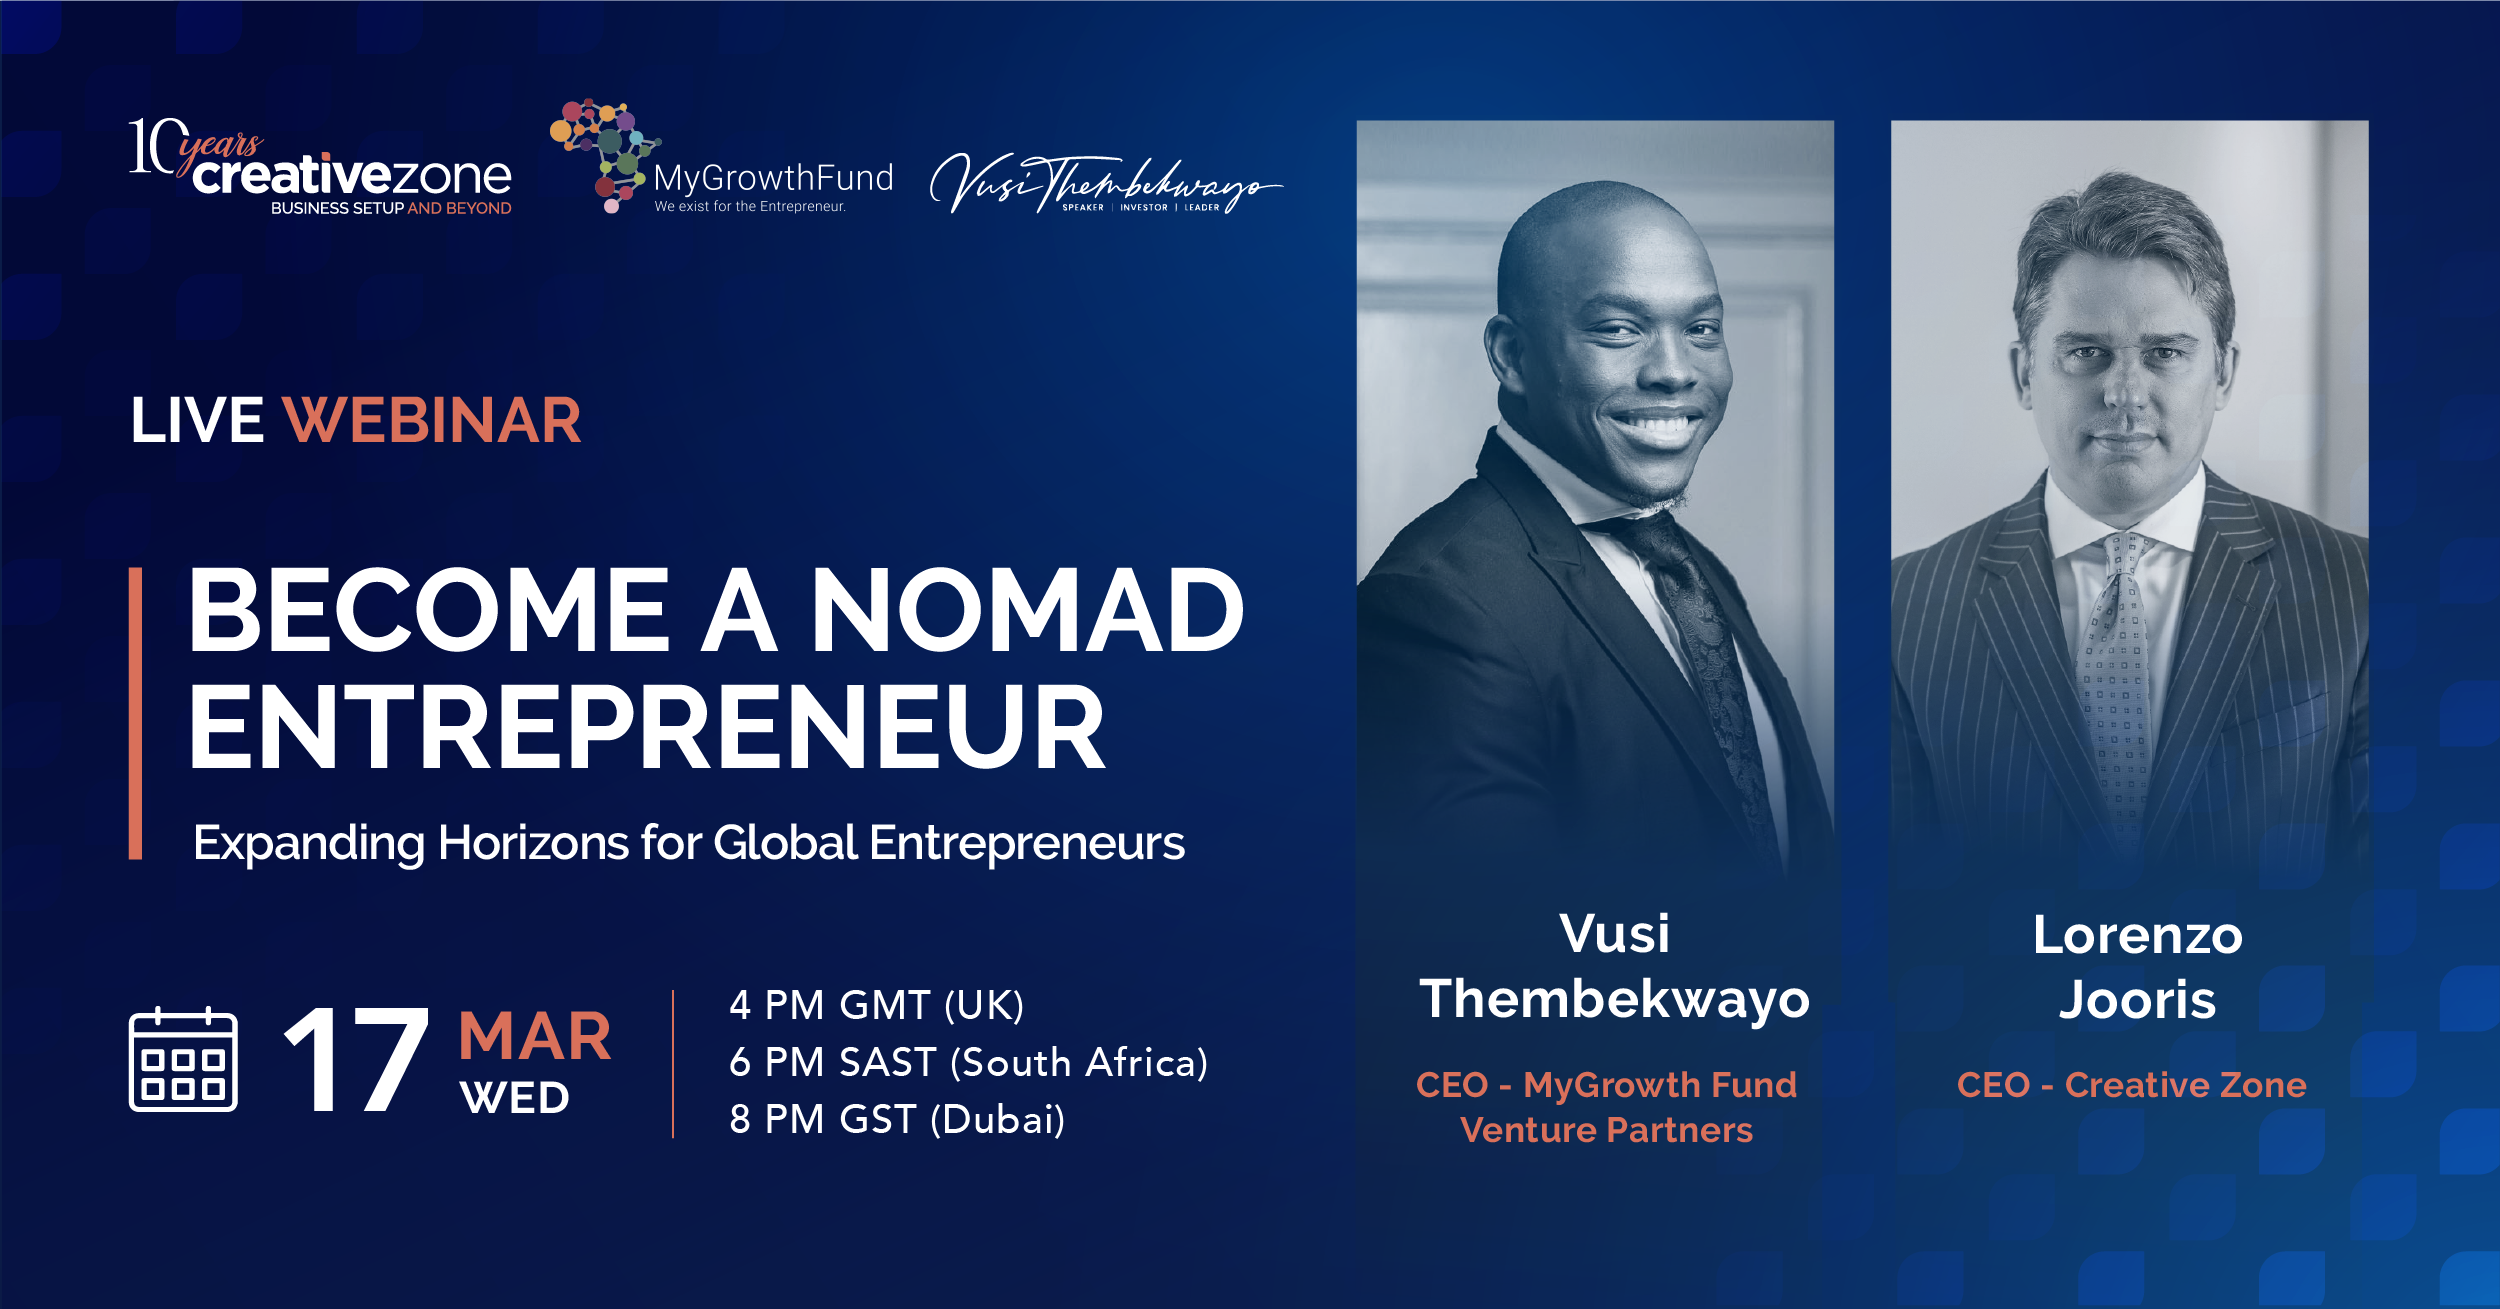 Creative Zone - Become a Nomad Entrepreneur with Vusi Thembekwayo